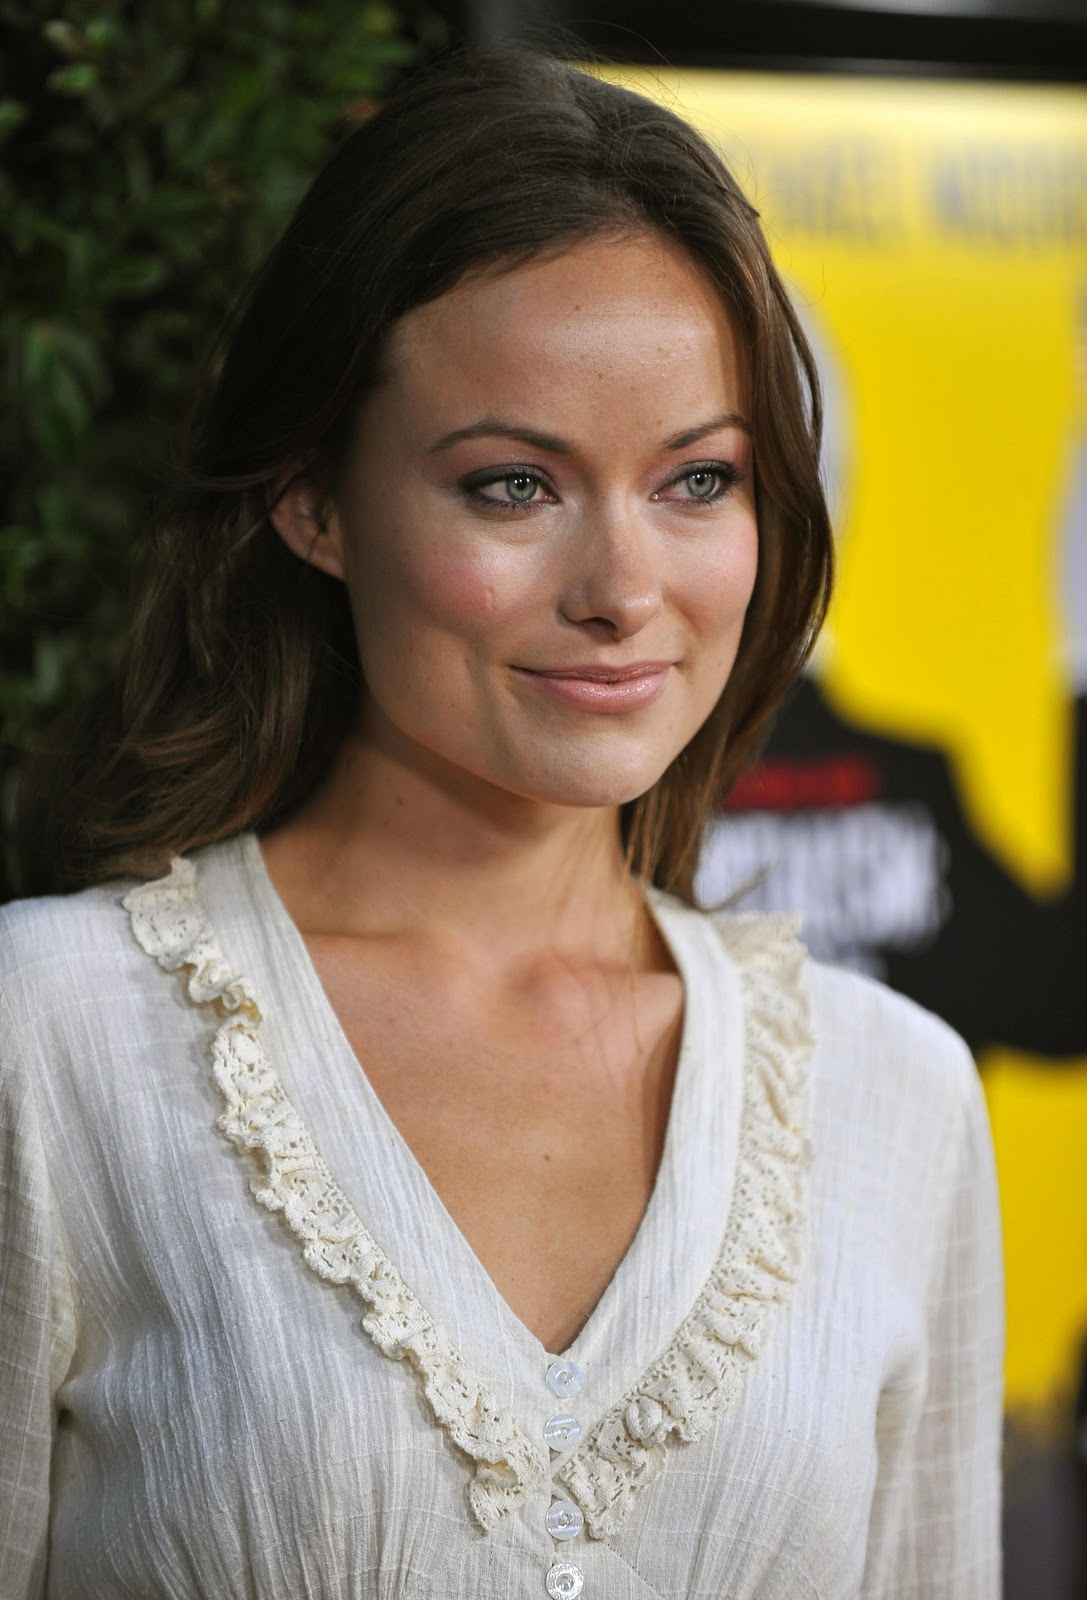 Olivia Wilde Profile And New Pictures 2013: Olivia Wilde Pictures Gallery (20)